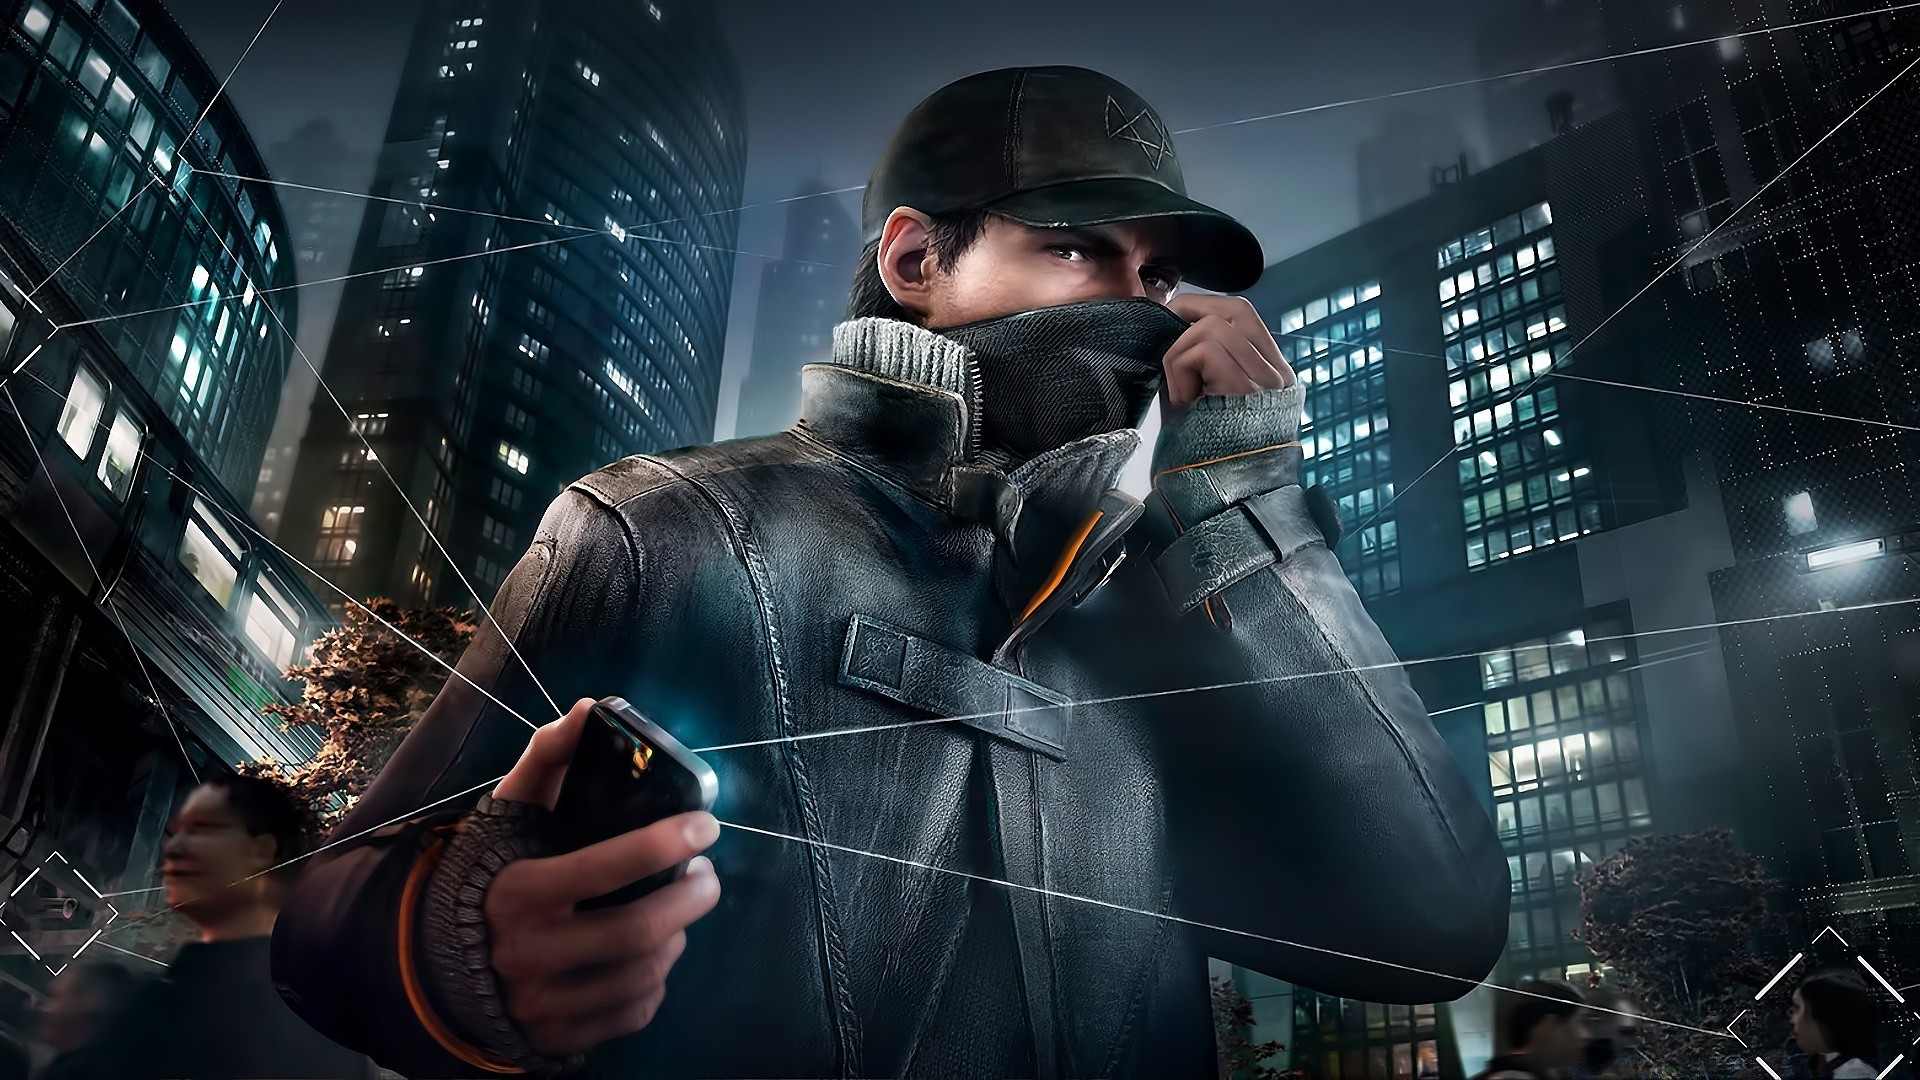 Aiden Pearce Watch Dogs 2014 Phone Wallpapers